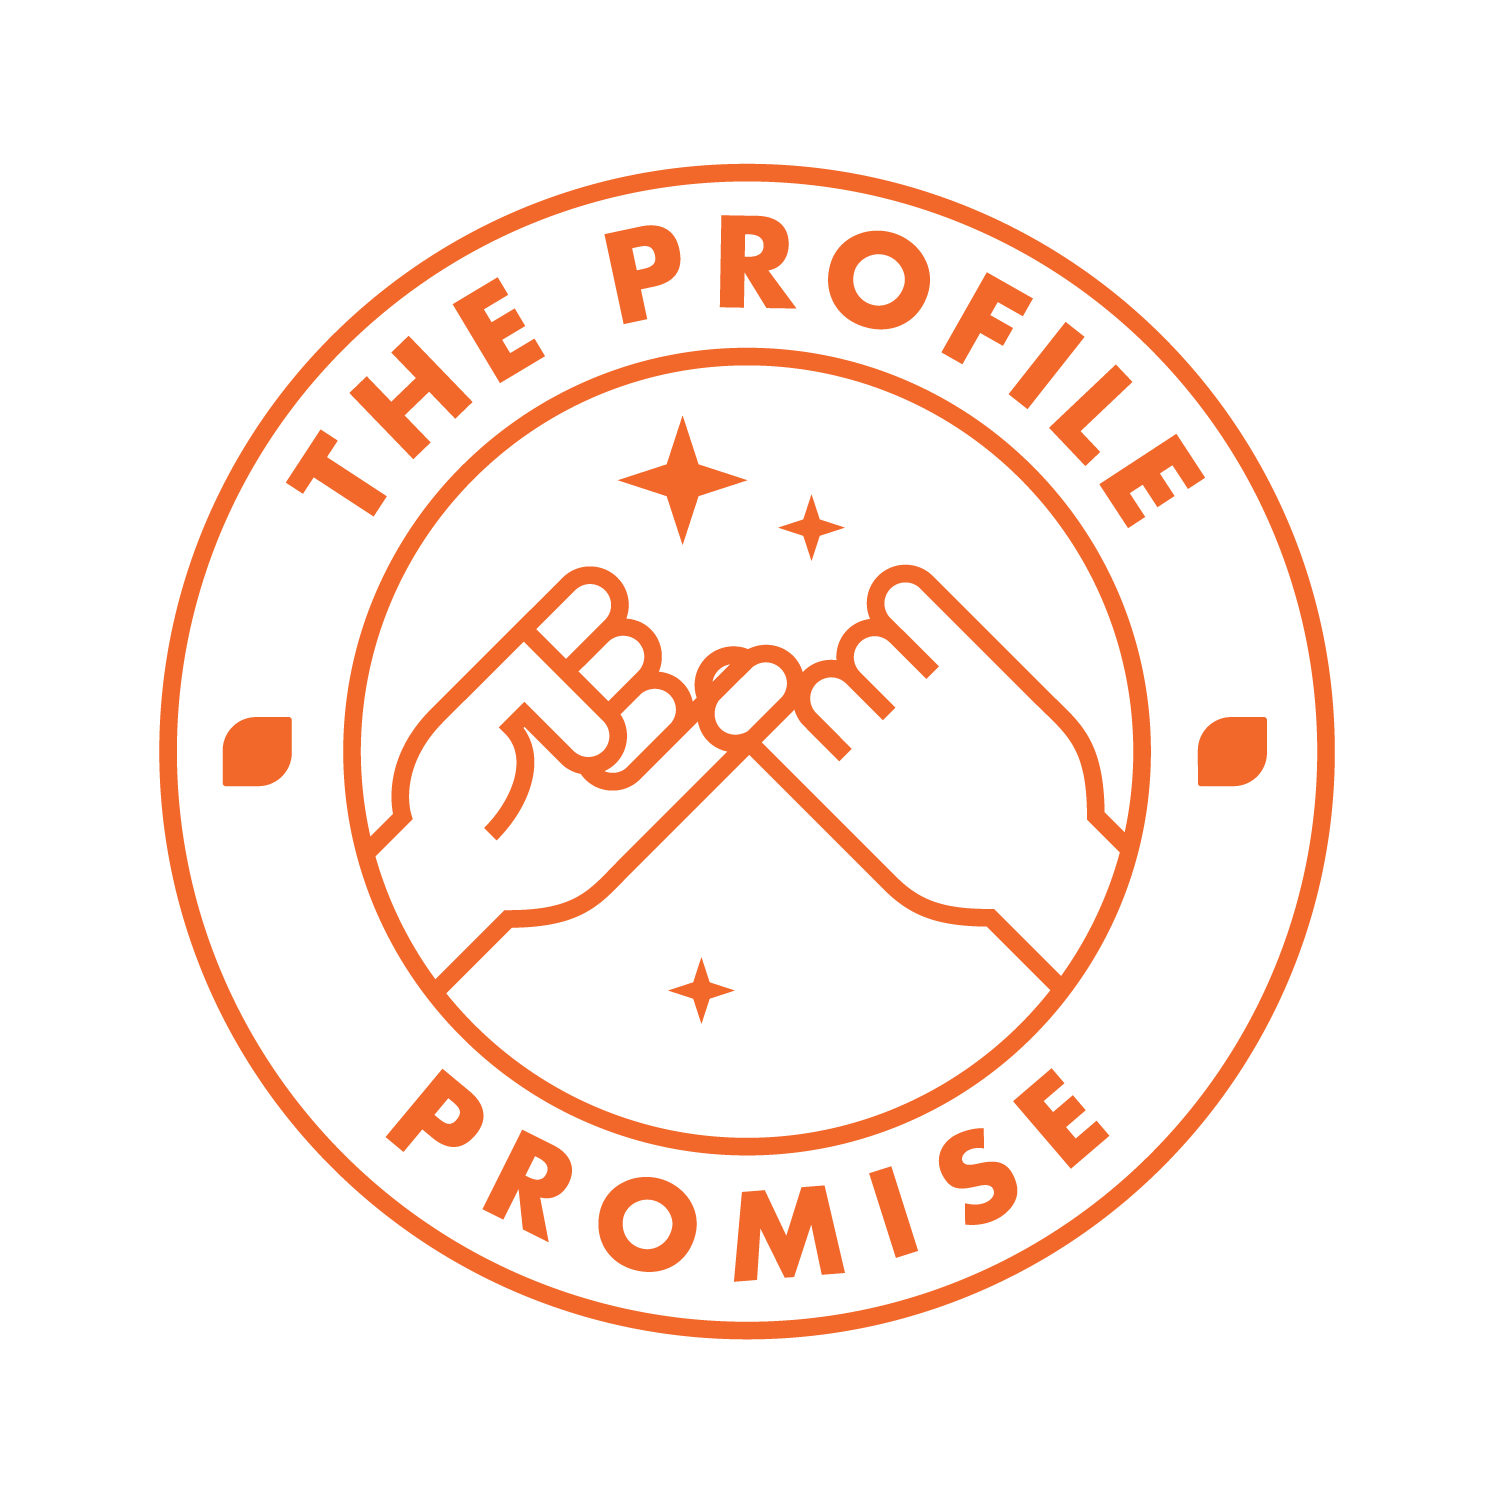 profile-promise-badge-full-color-01